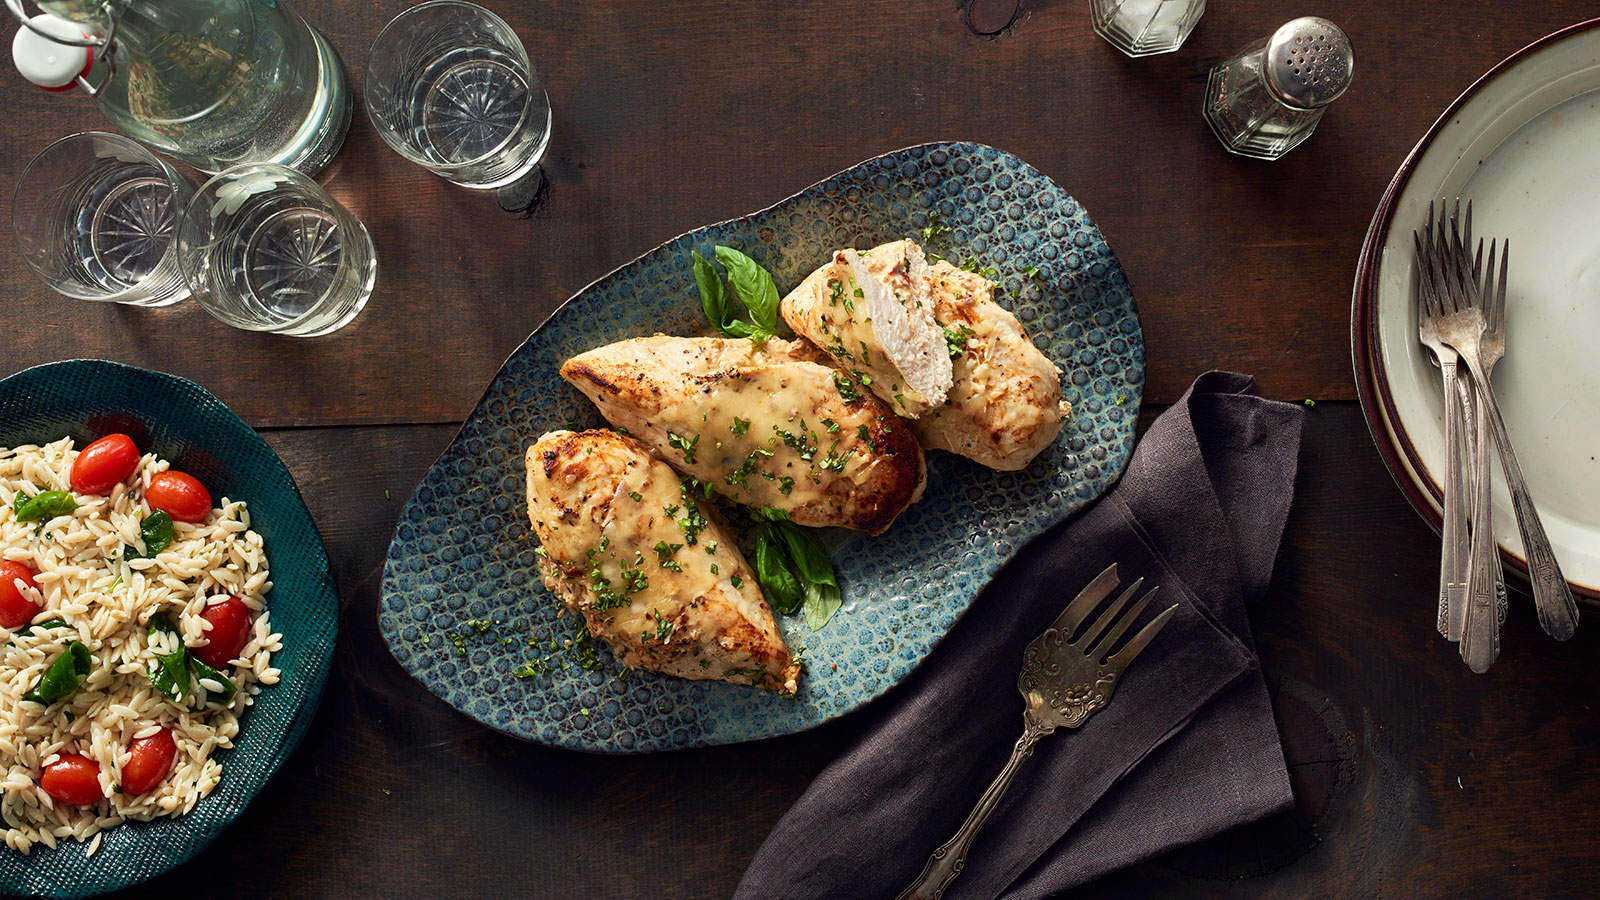 Chicken Breasts Stuffed With Cheese Basil And Sundried